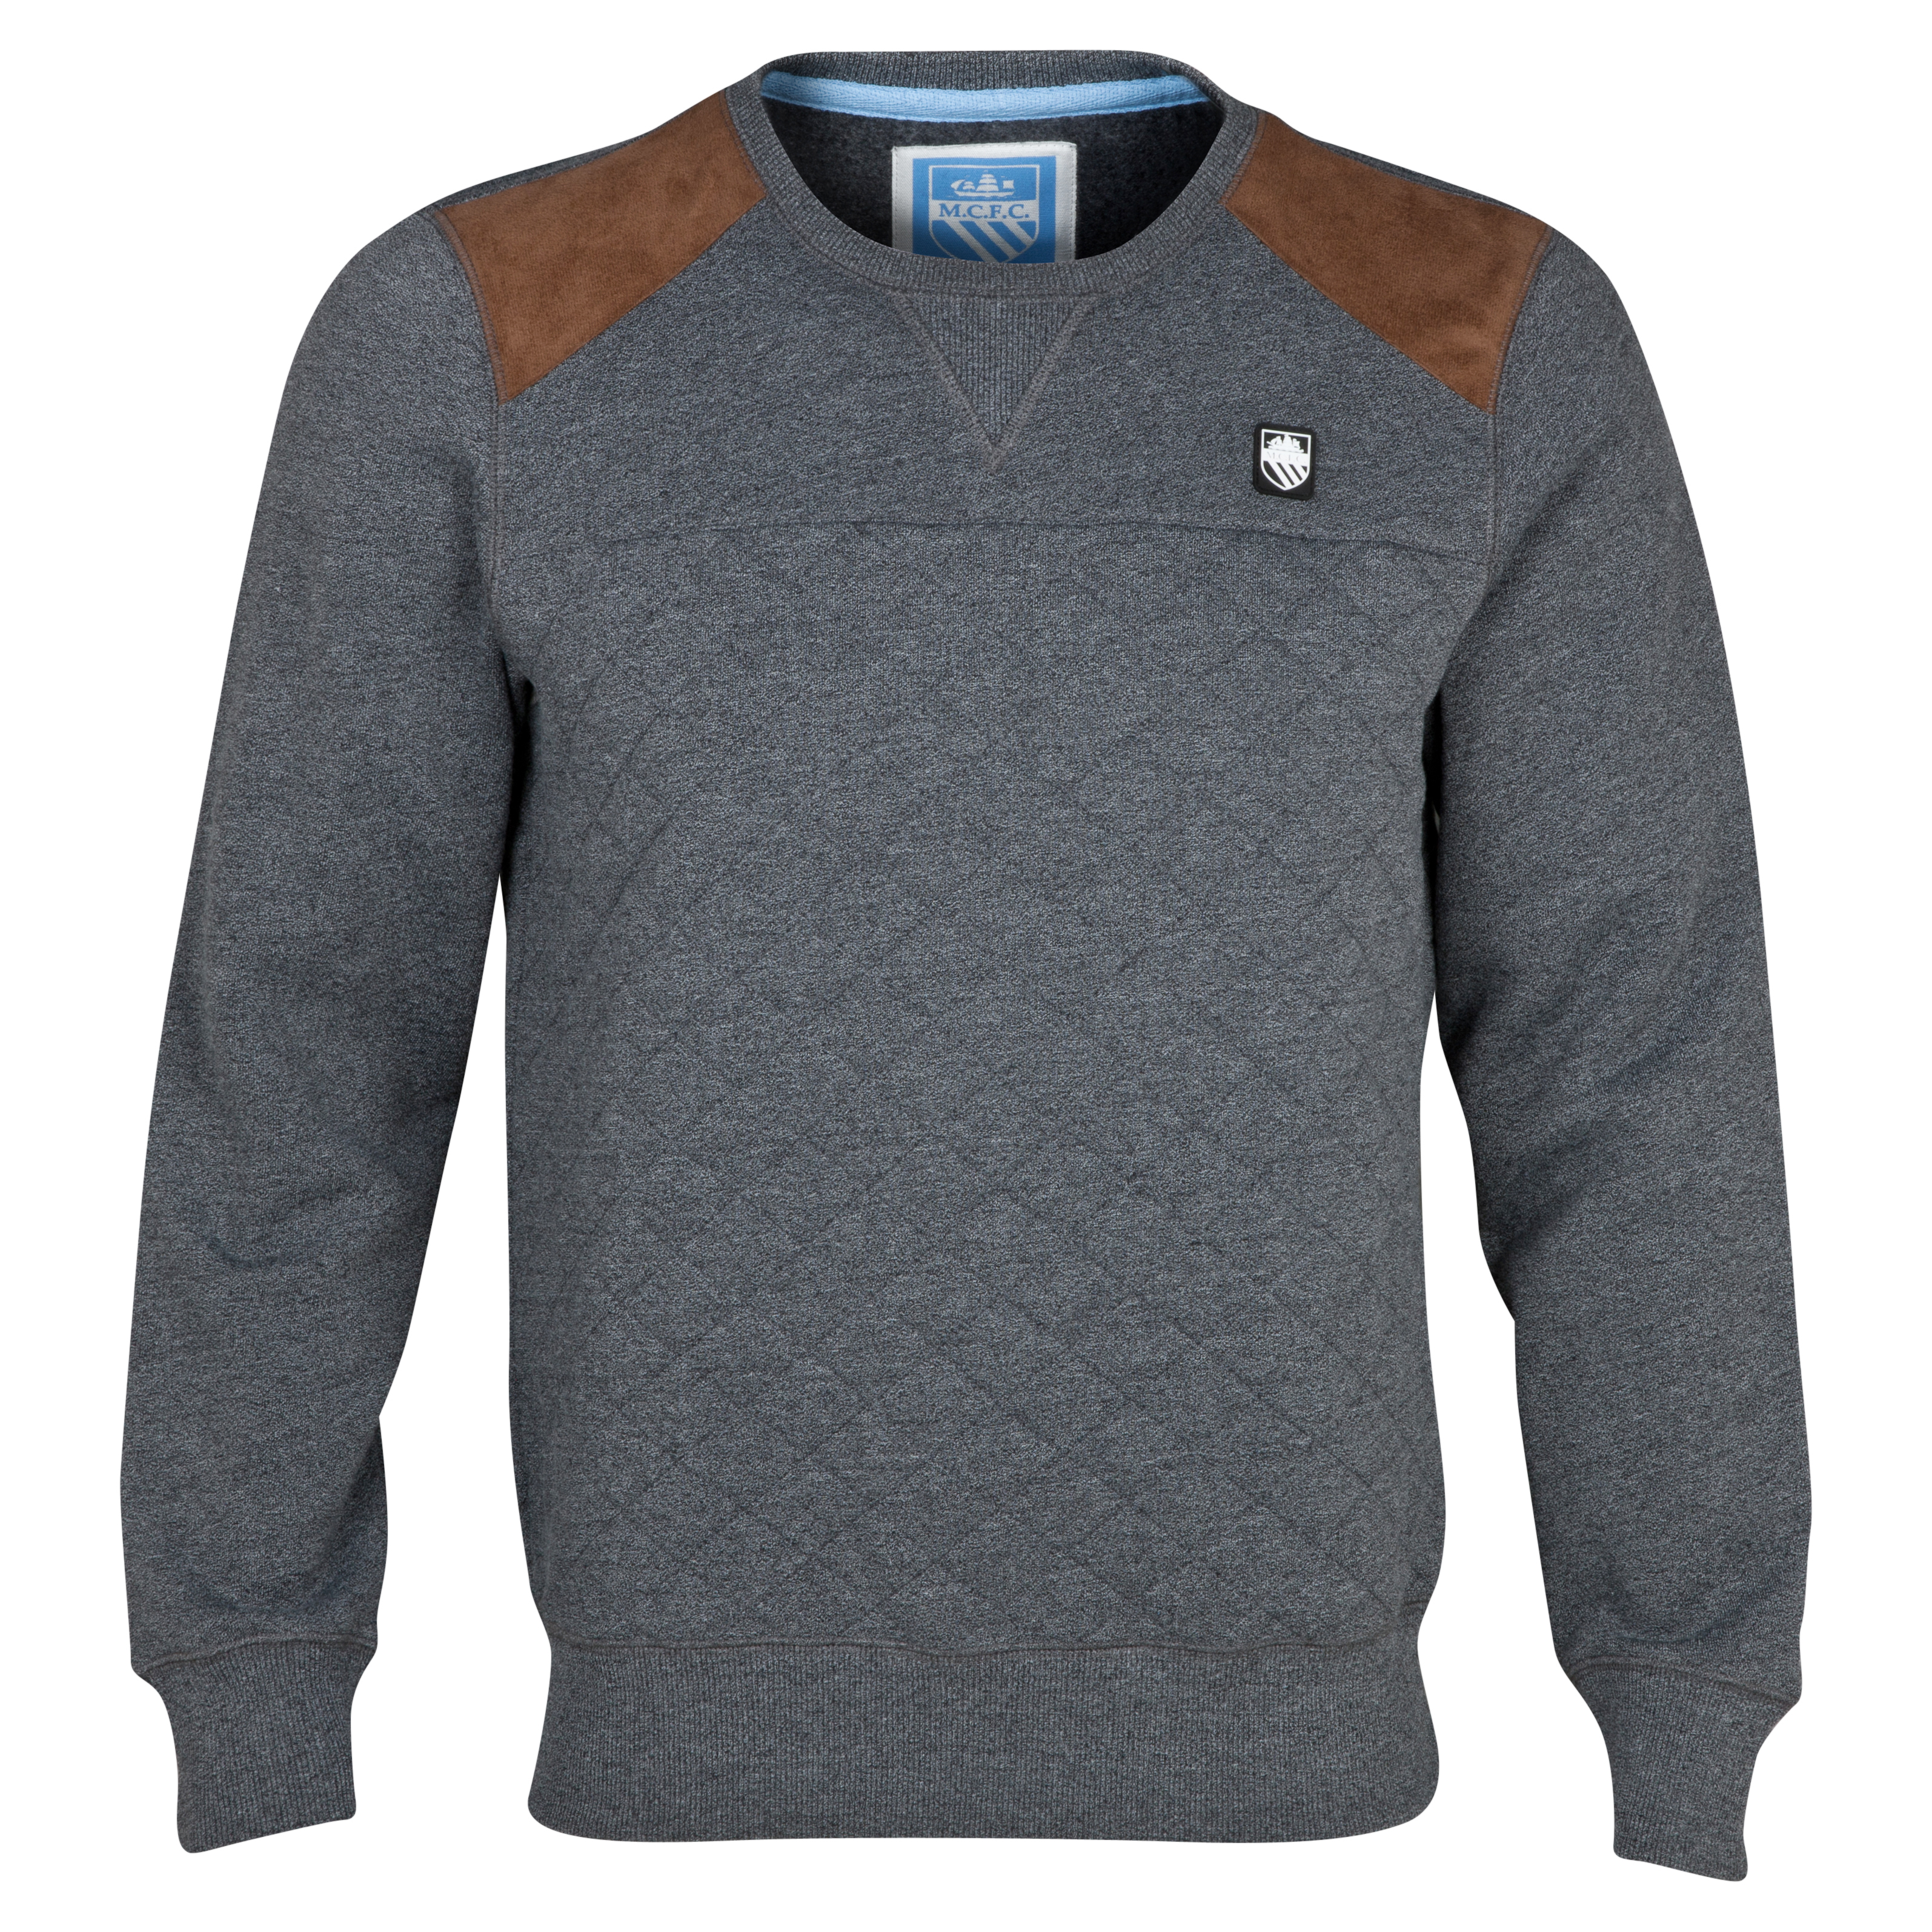 Manchester City Tacoma Crew Neck Sweater - Mens Grey